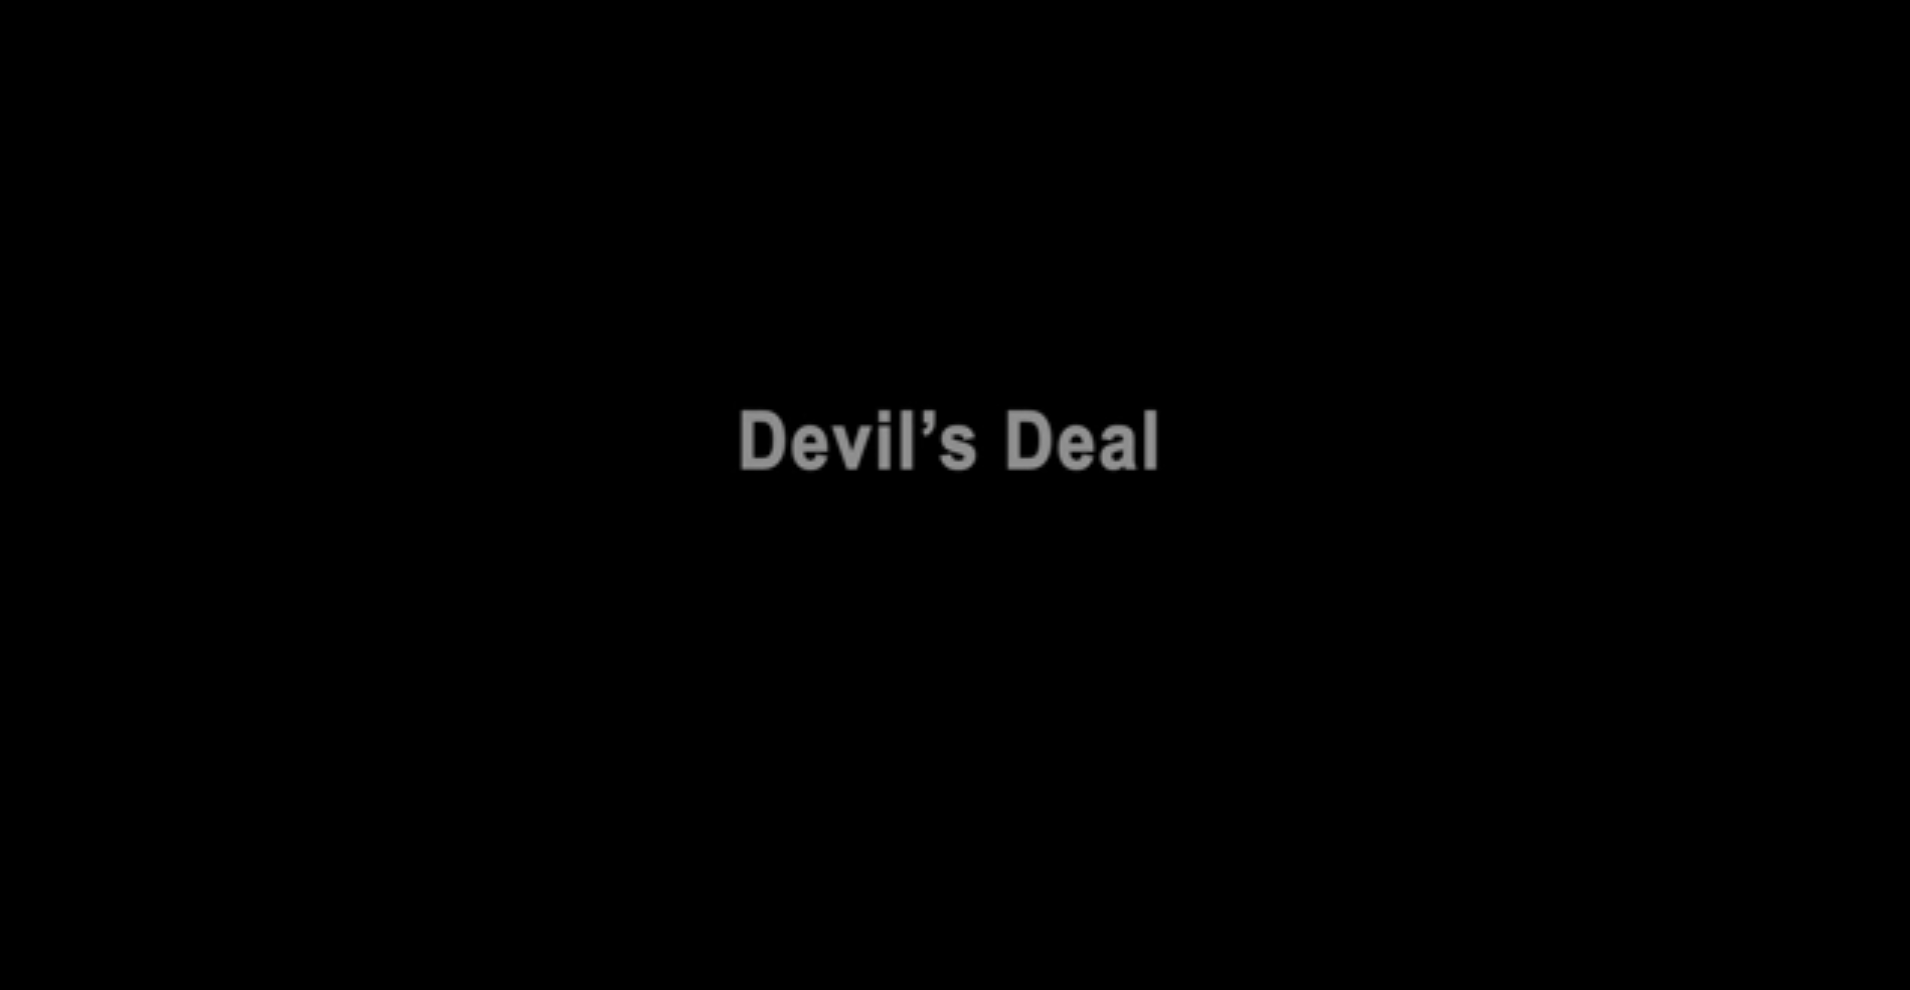 The Bad Batch: Devil's Deal title credits